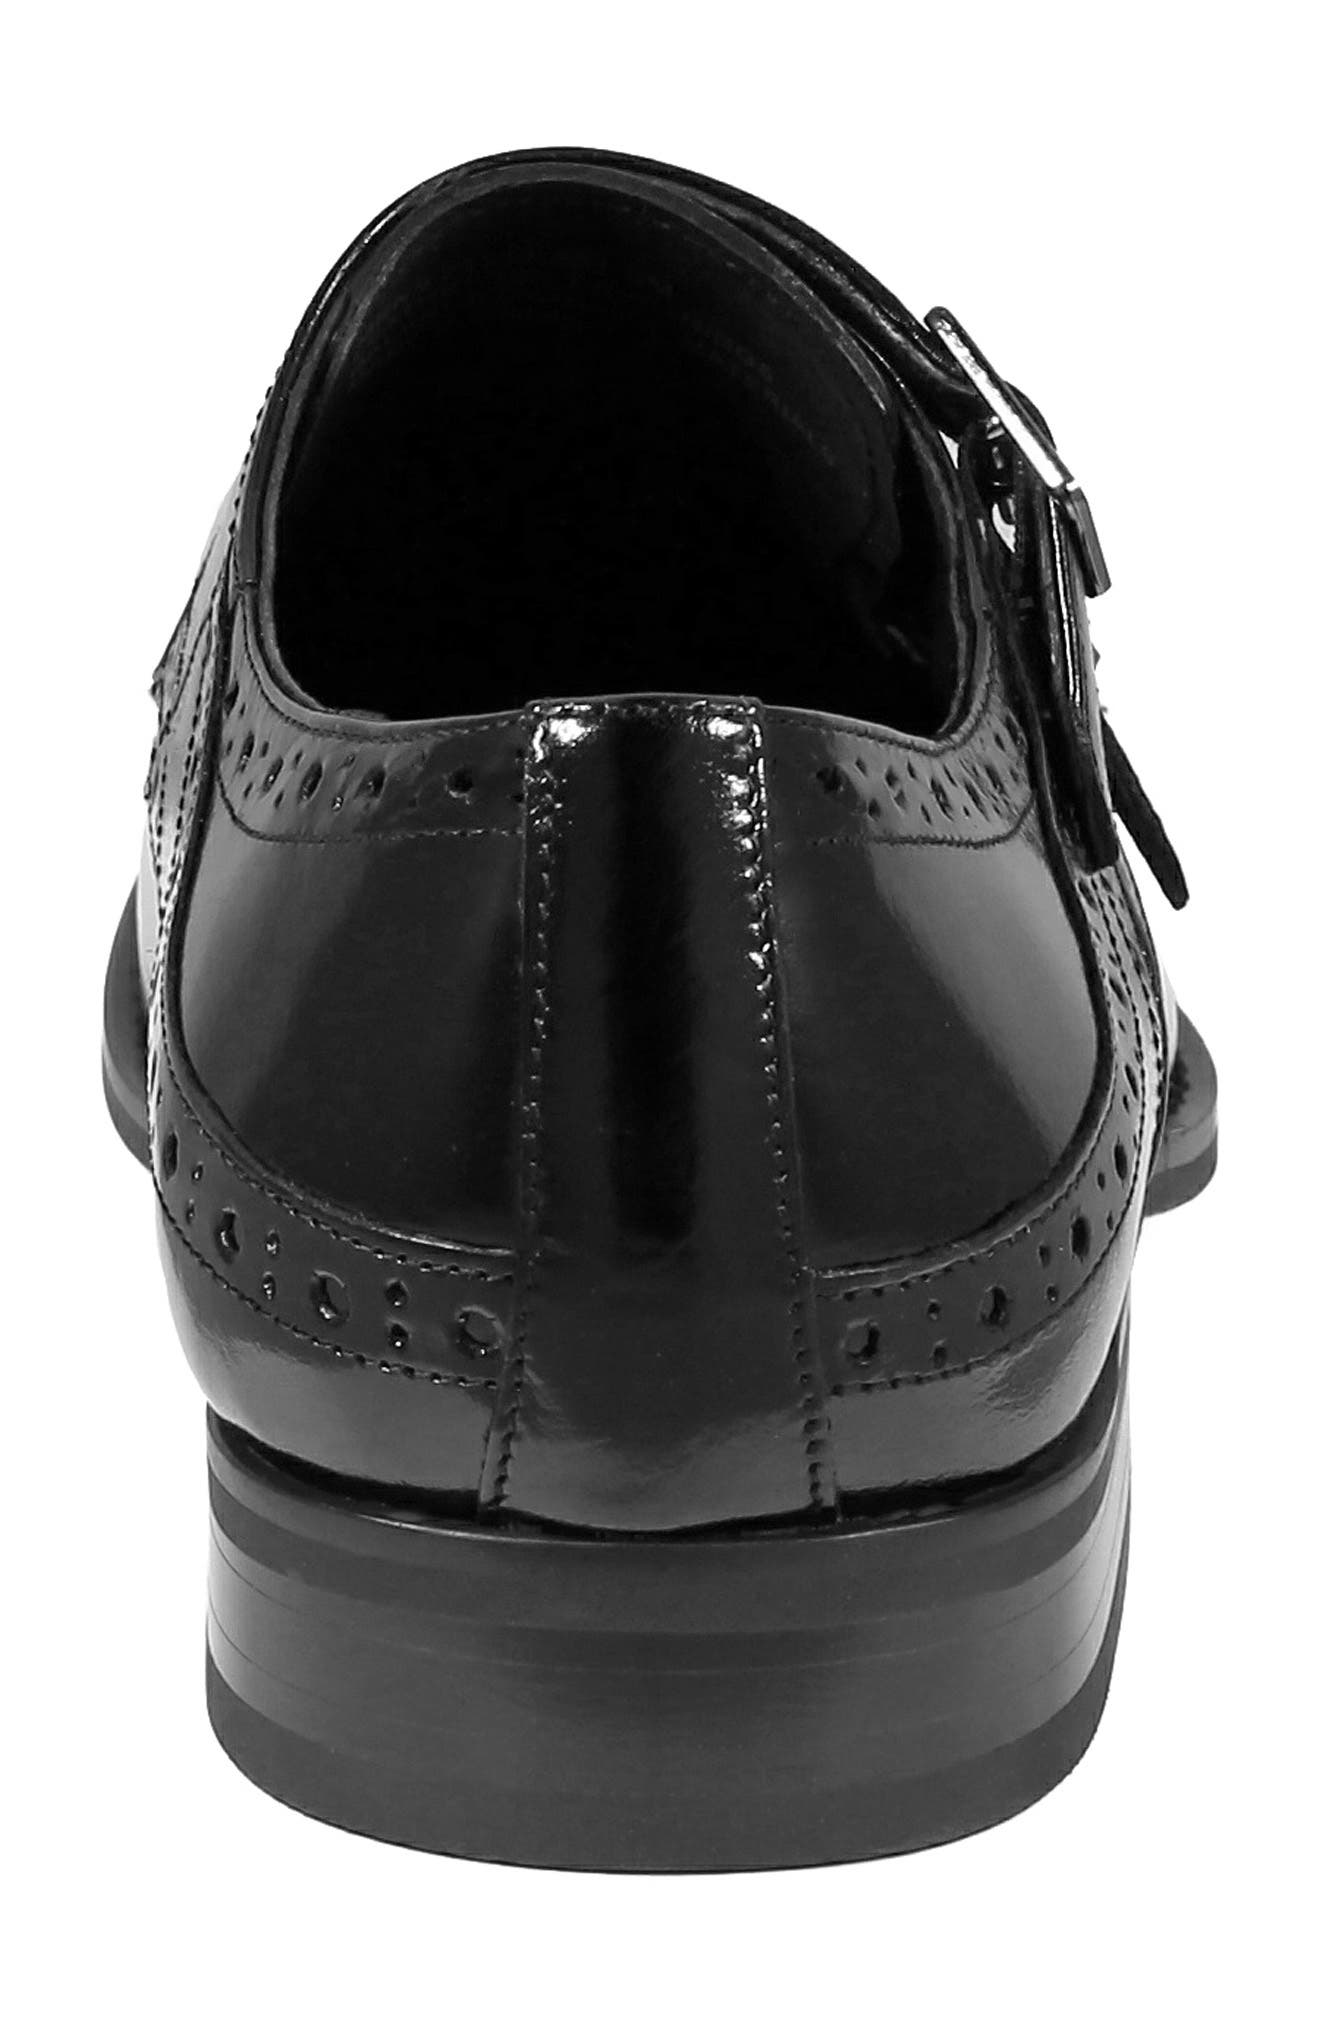 STACY ADAMS, Tayton Cap Toe Double Strap Monk Shoe, Alternate thumbnail 8, color, BLACK LEATHER